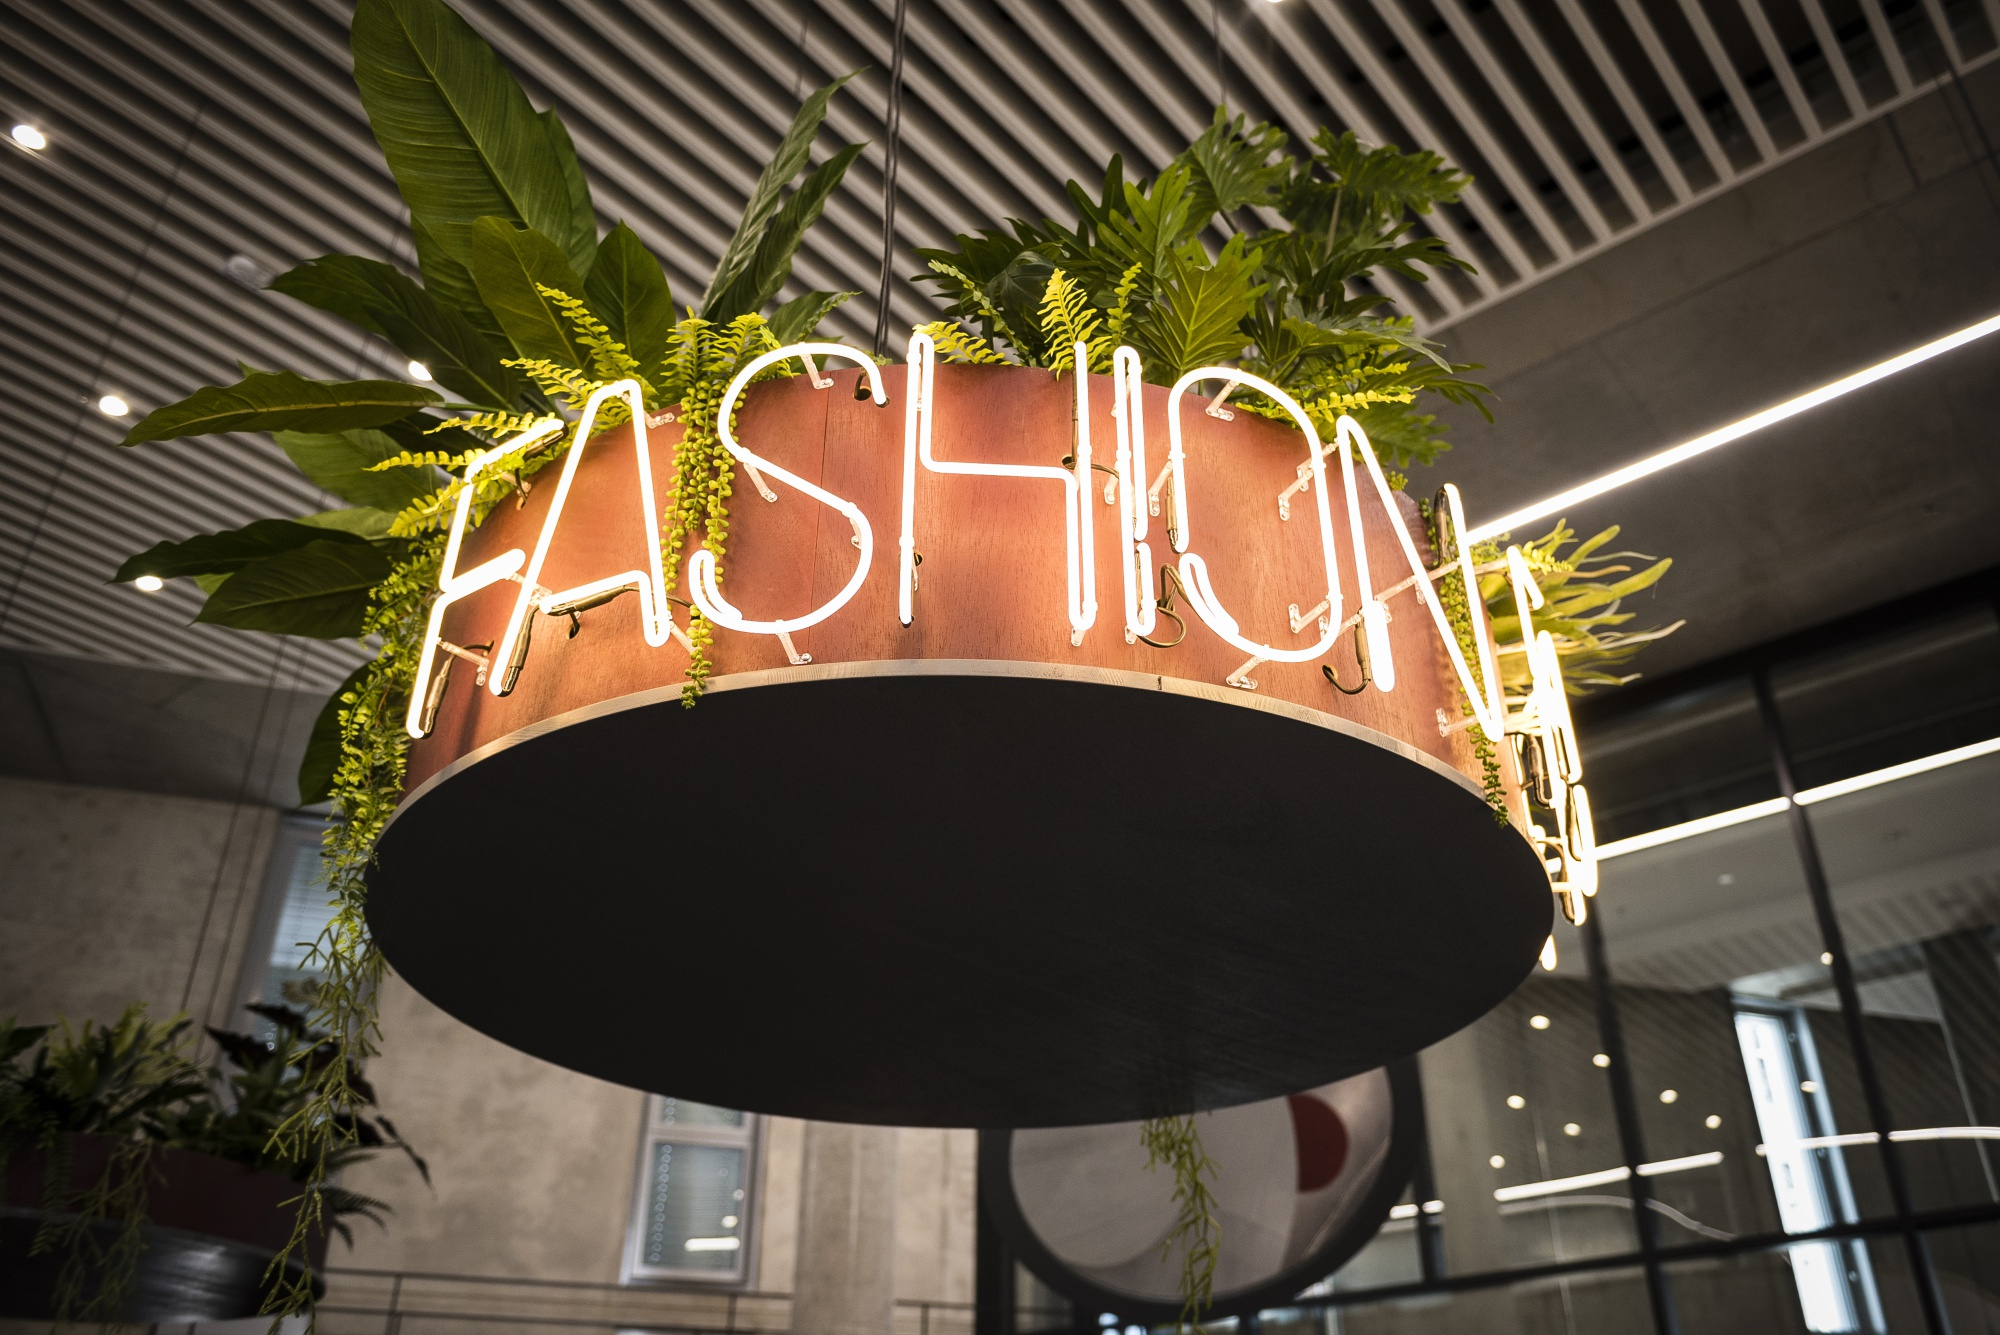 Neon lettering spells out fashion on a hanging plant basket in a rest area at Zalando SE's new campus headquarters in Berlin, Germany.